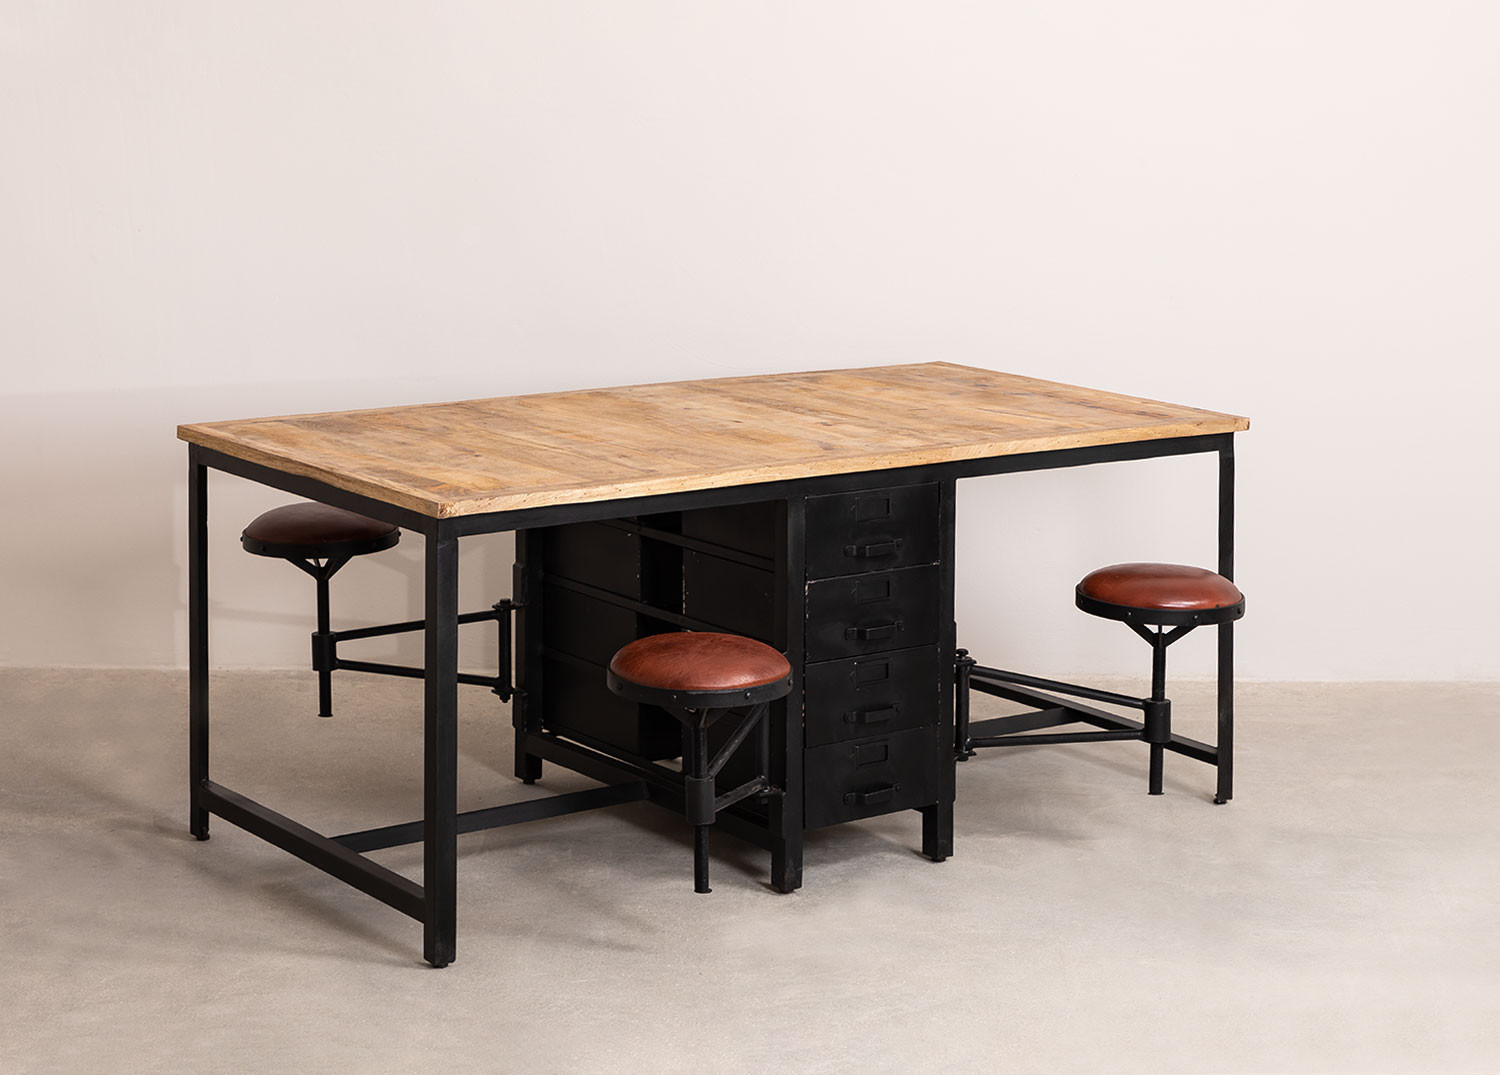 Mango Wood and Metal Dining Table with 4 Quadrap Stools, gallery image 1